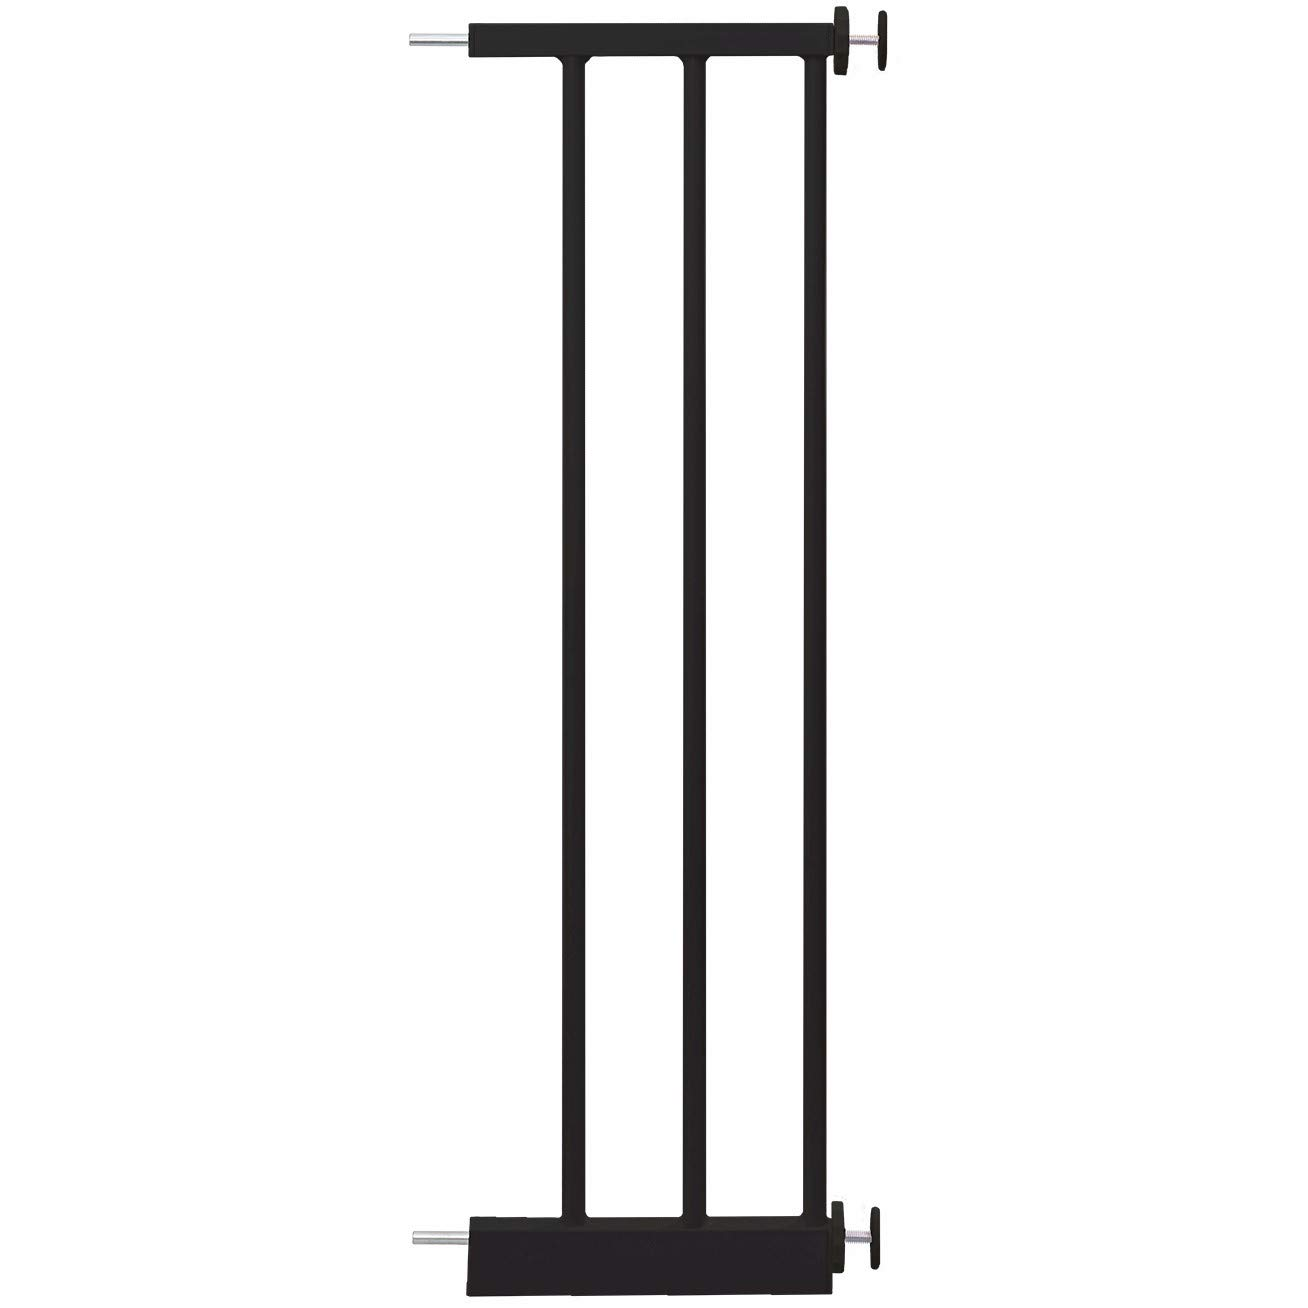 Perma Child Safety Perma Baby Gate Extension, Black, 8 Inch